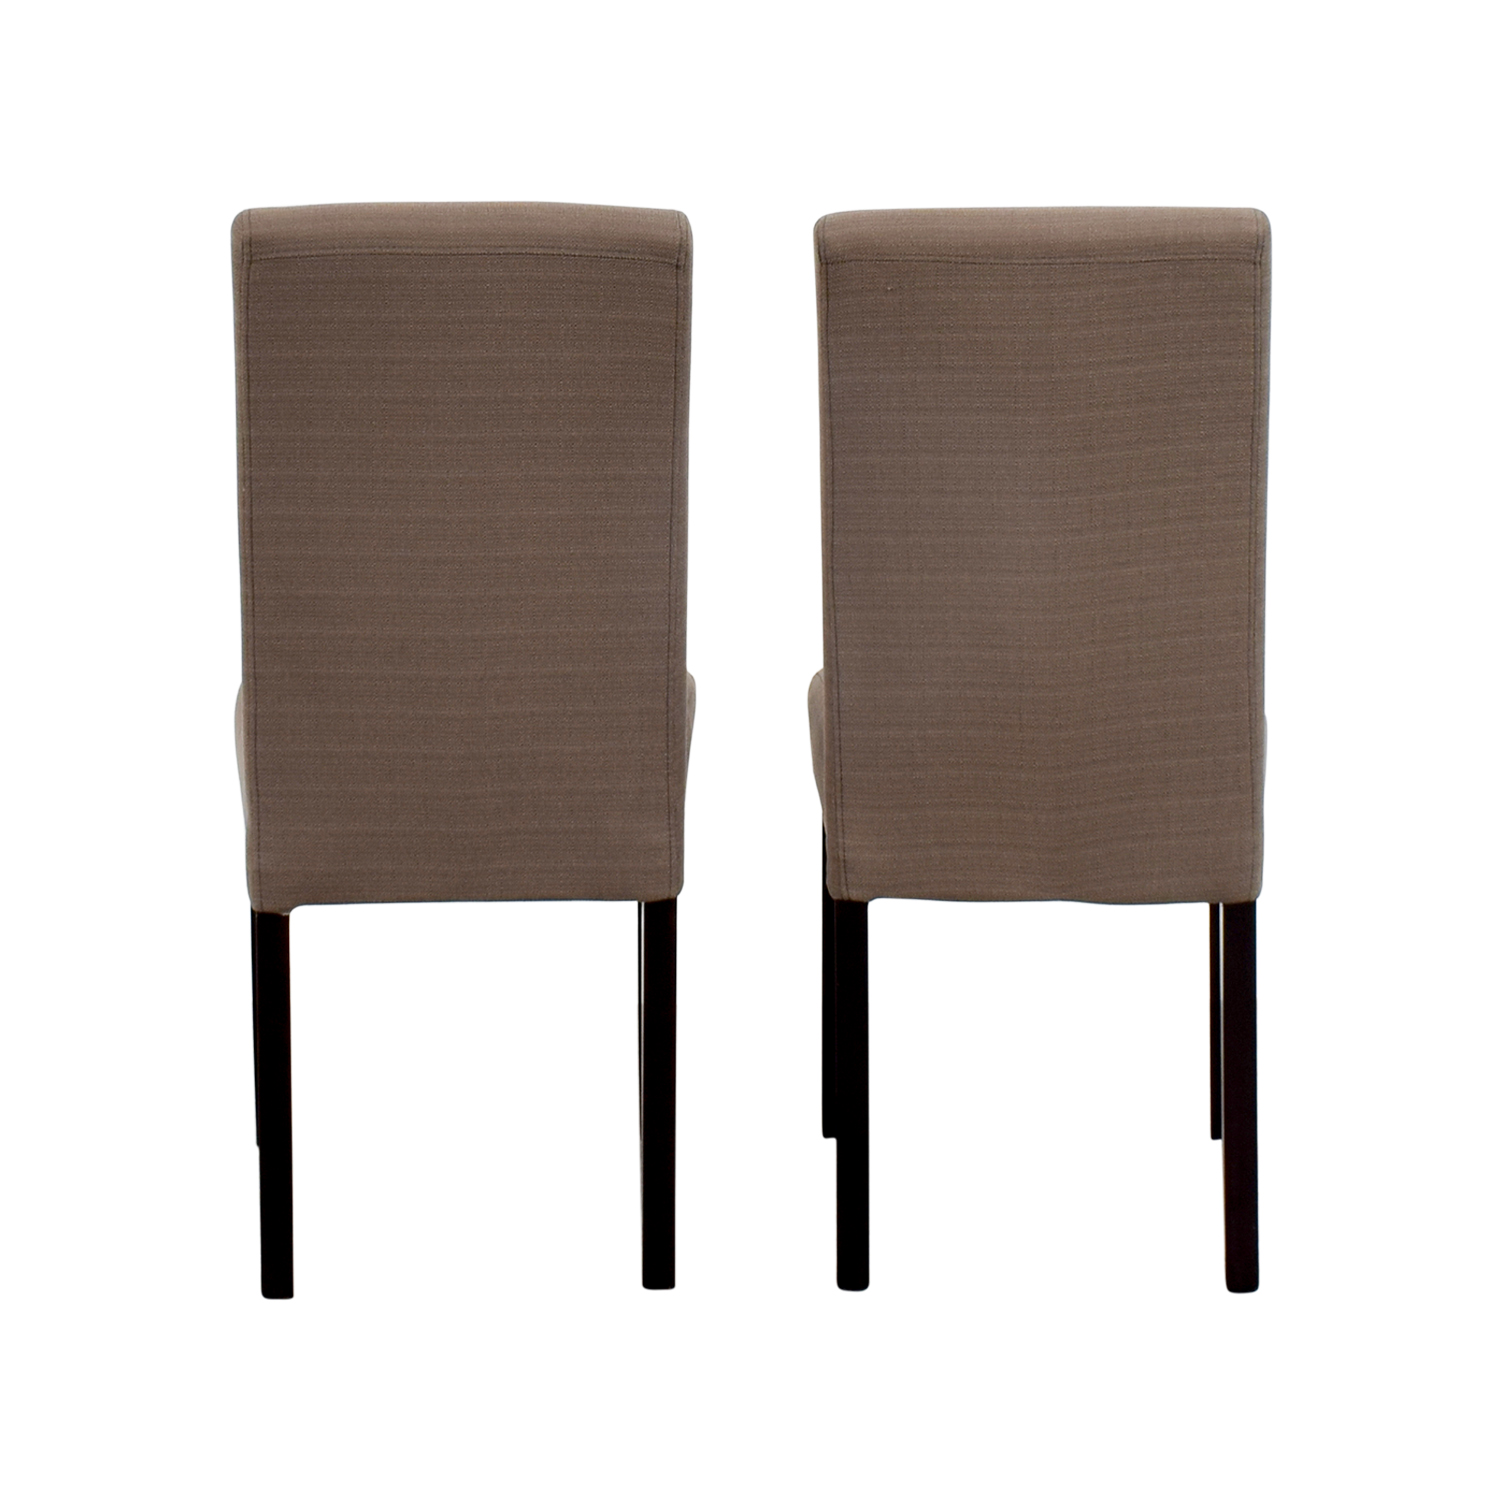 Modway Madrid Nail Head Dining Chairs Modway